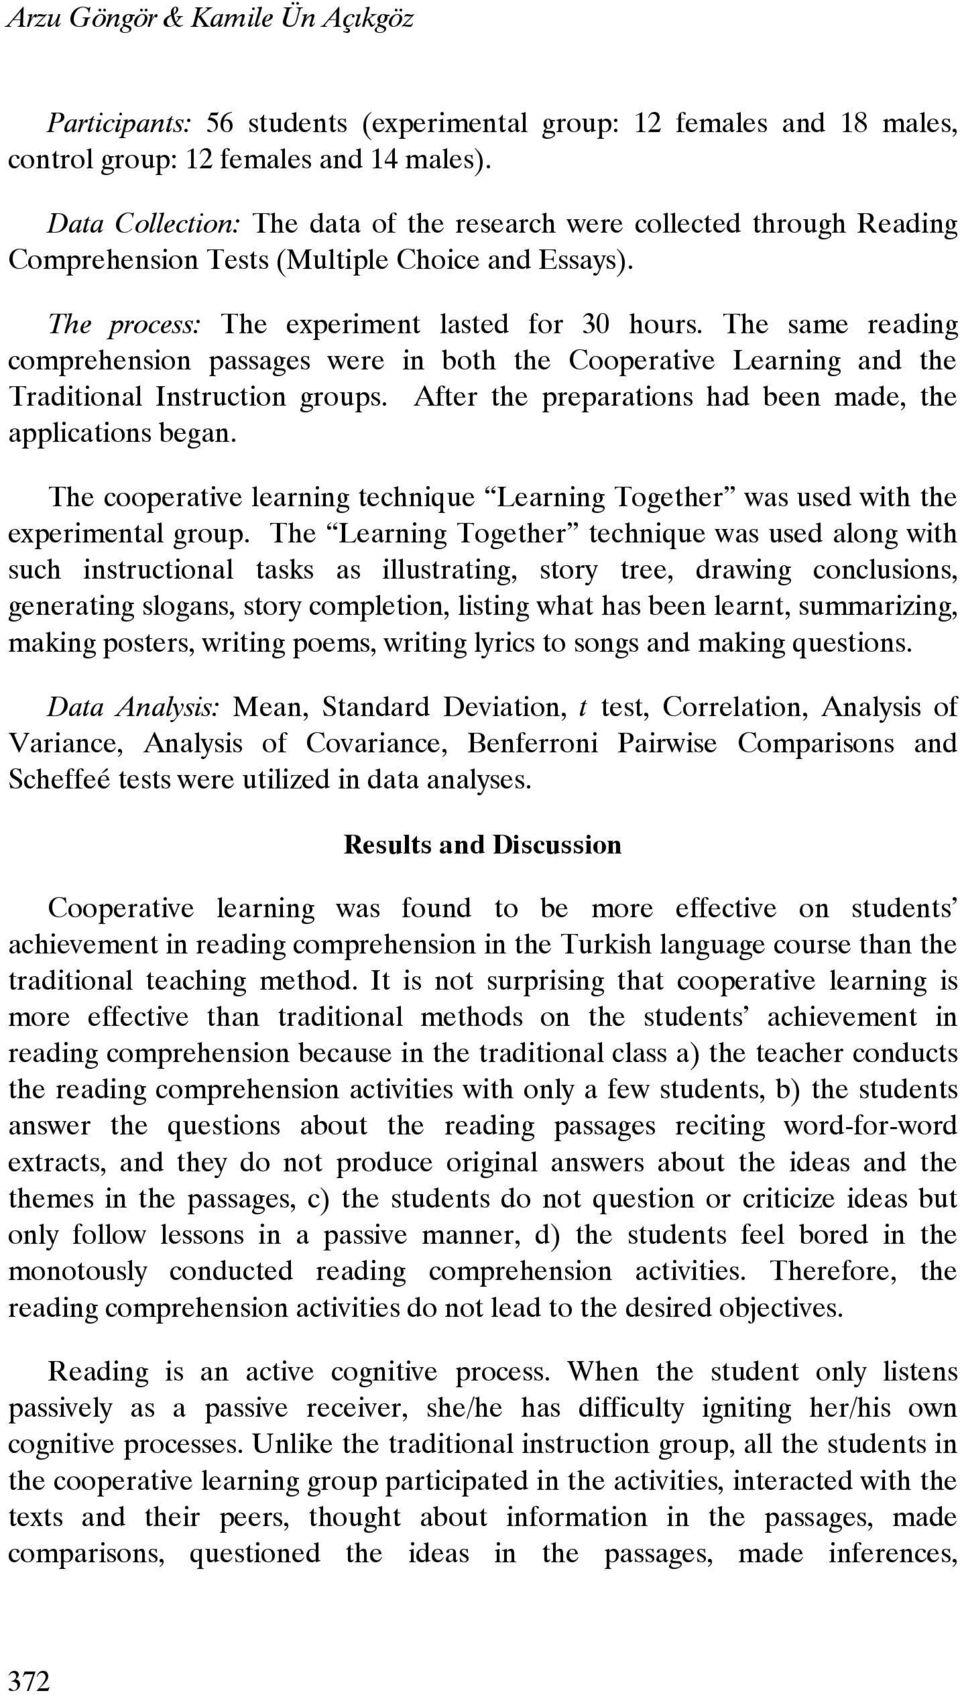 The same reading comprehension passages were in both the Cooperative Learning and the Traditional Instruction groups. After the preparations had been made, the applications began.